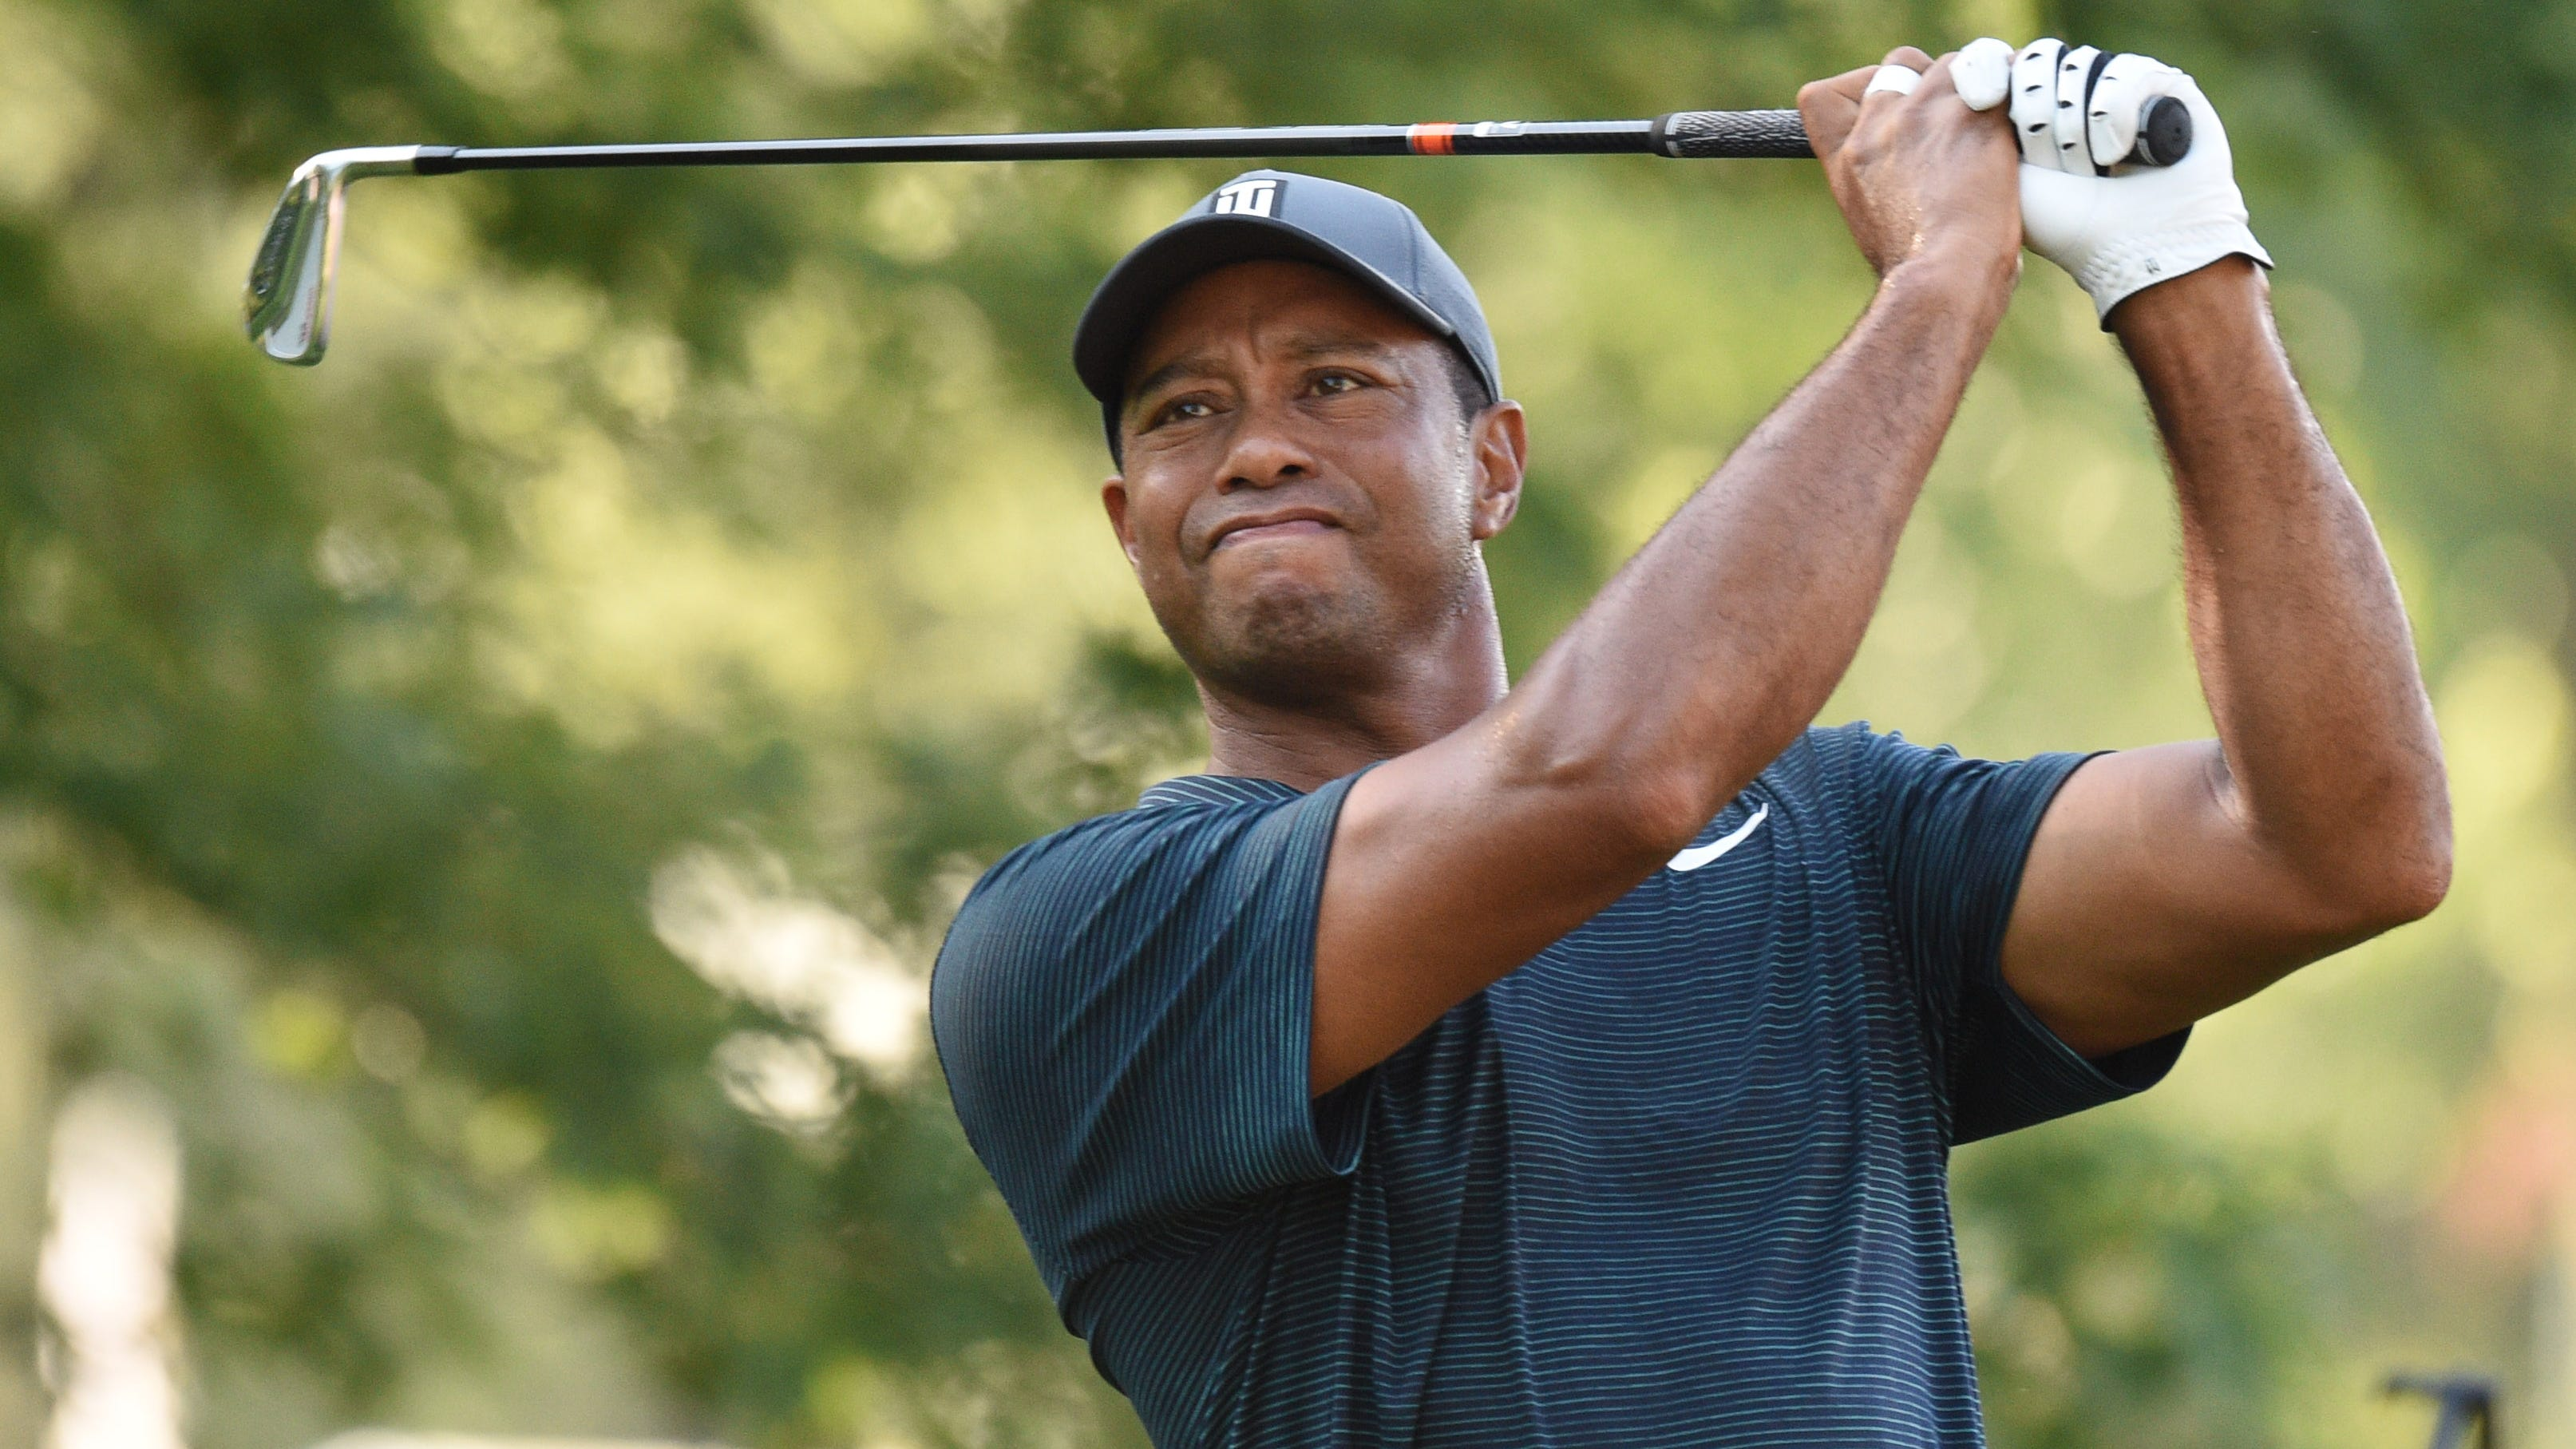 PGA Championship: Follow Tiger Woods' Thursday Round, Shot